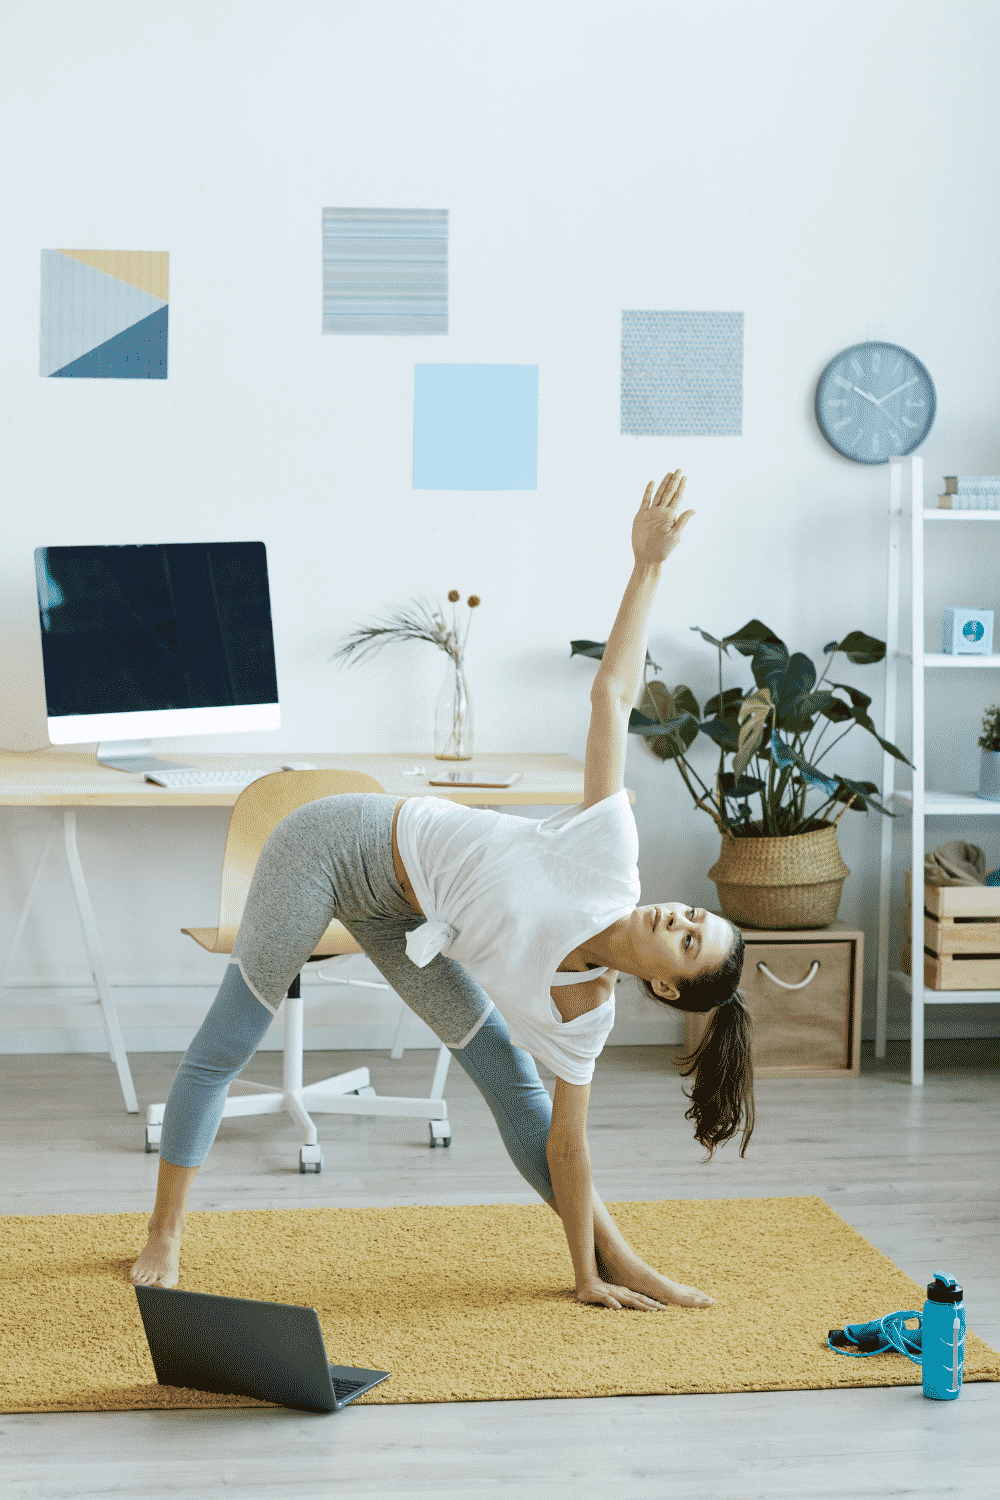 A woman does yoga in her home office